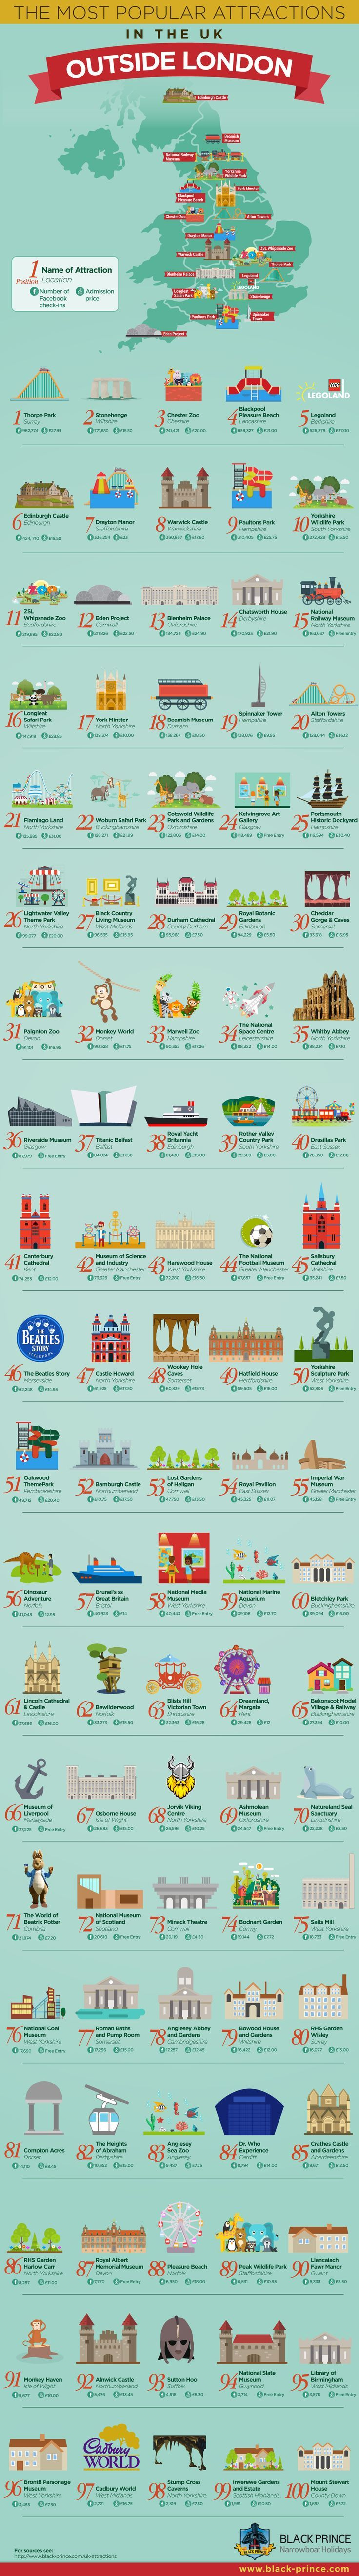 The 100 coolest things to do in the UK (outside London) - Matador Network